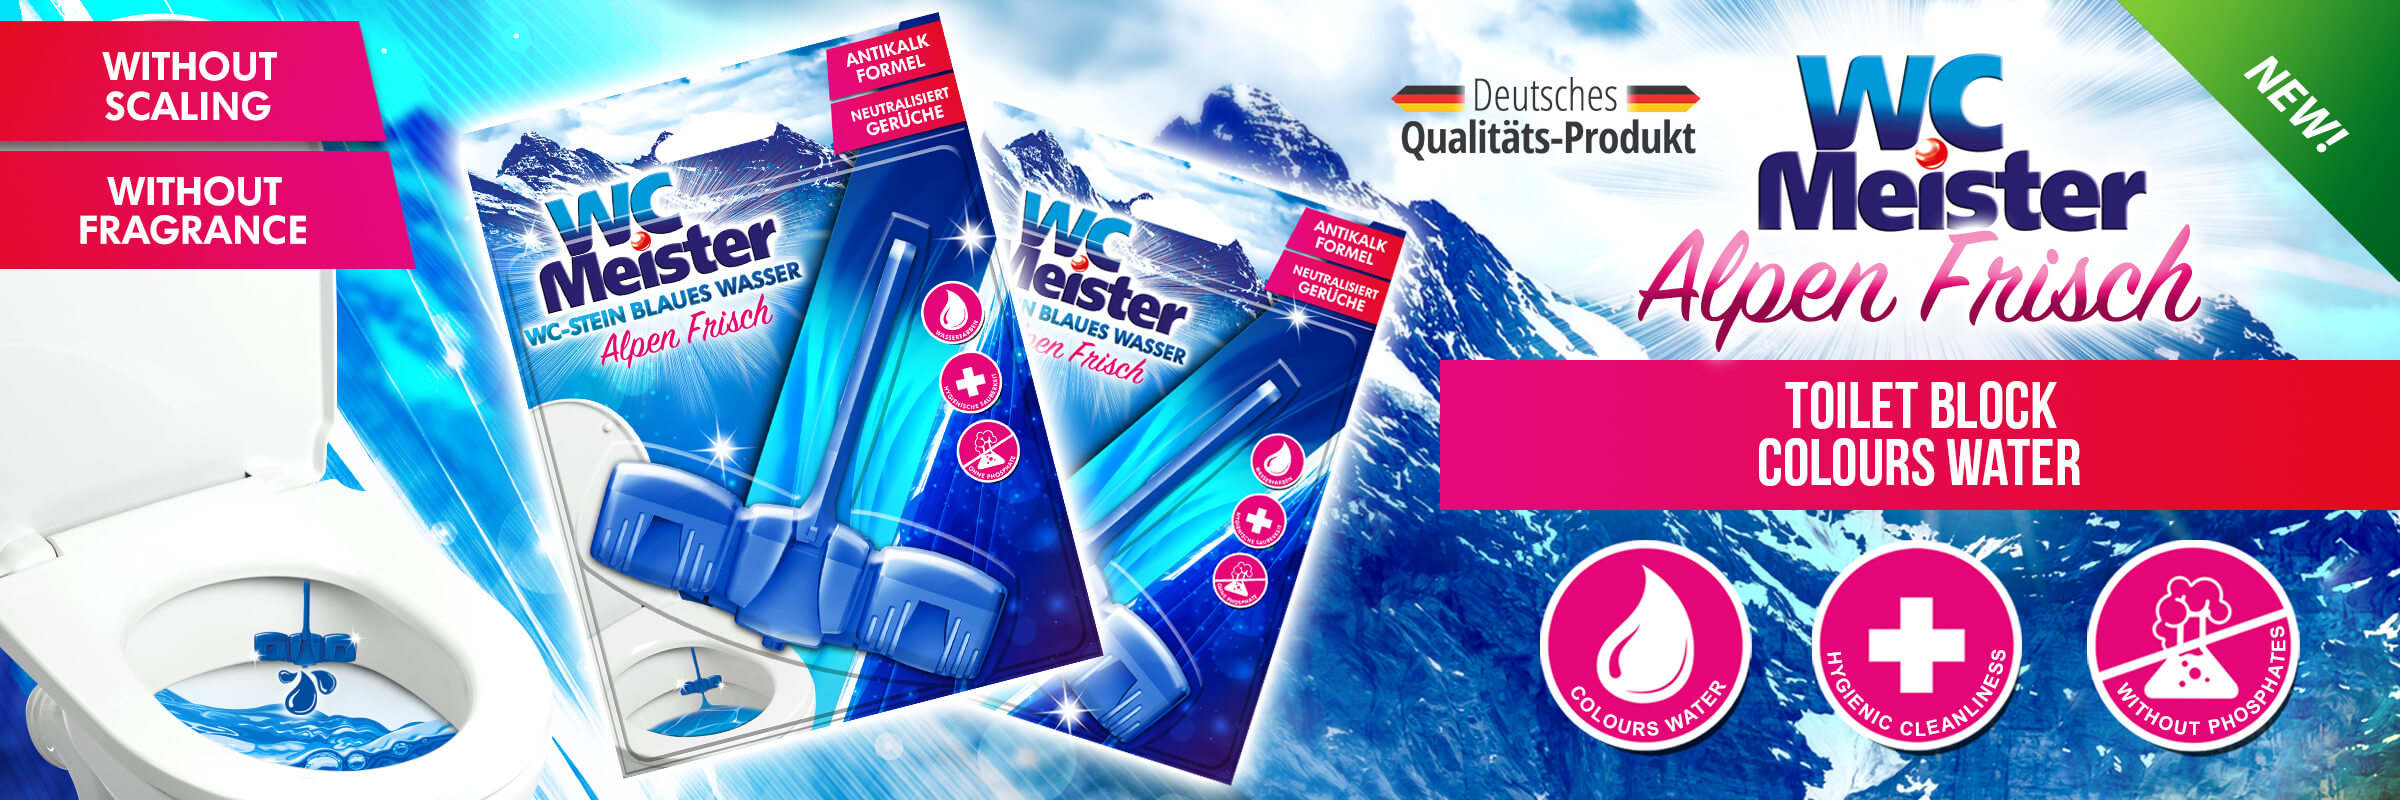 WC Meister Alpen Frisch toilet block colouring water blue